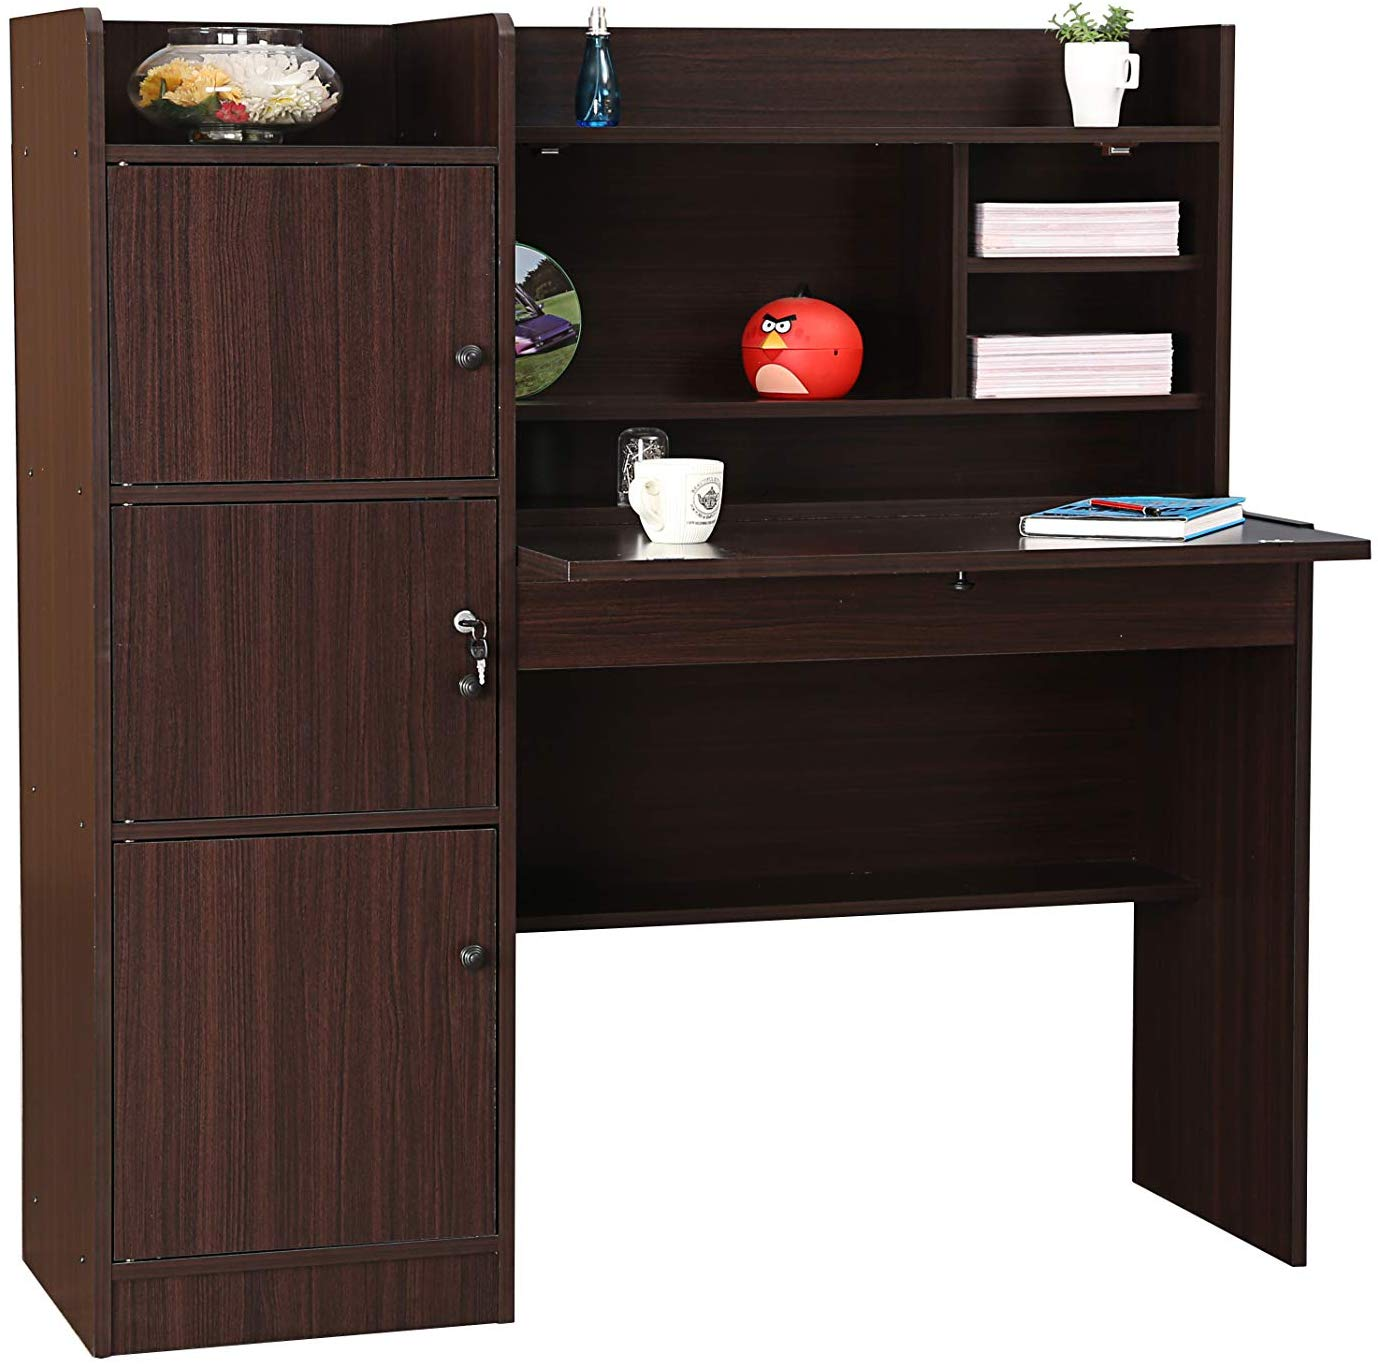 Furniture photography in delhi 017